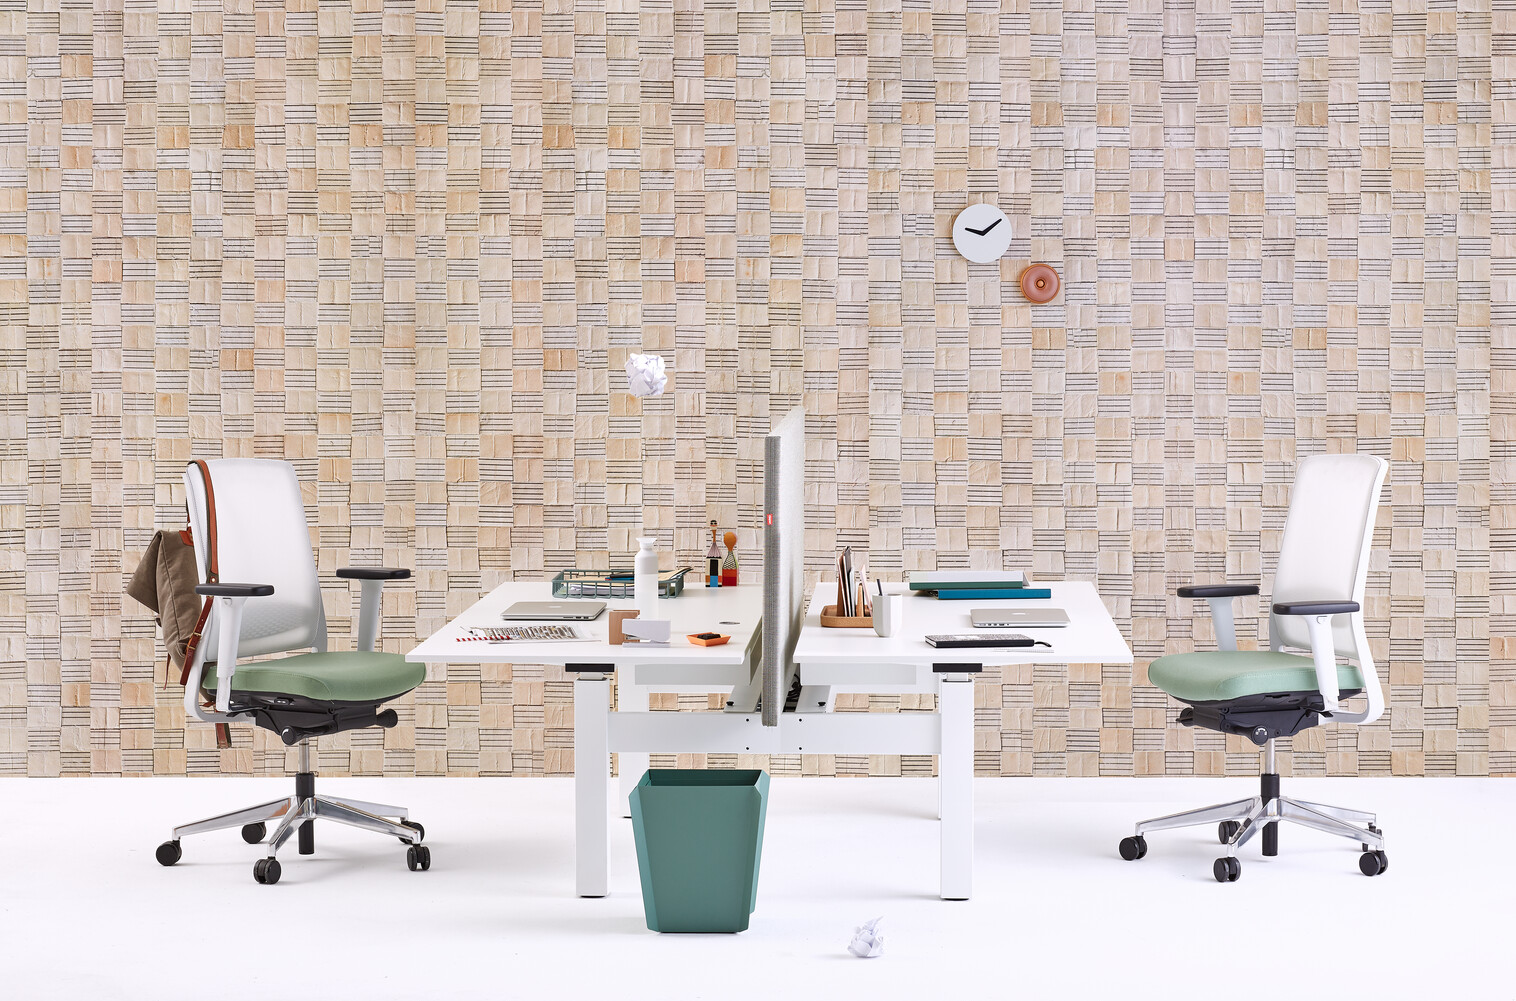 Gispen TM dual table with white frame and white tabletop  and 2 Zinn office chairs and green Binit wastebin in front of light brown pattern background front view